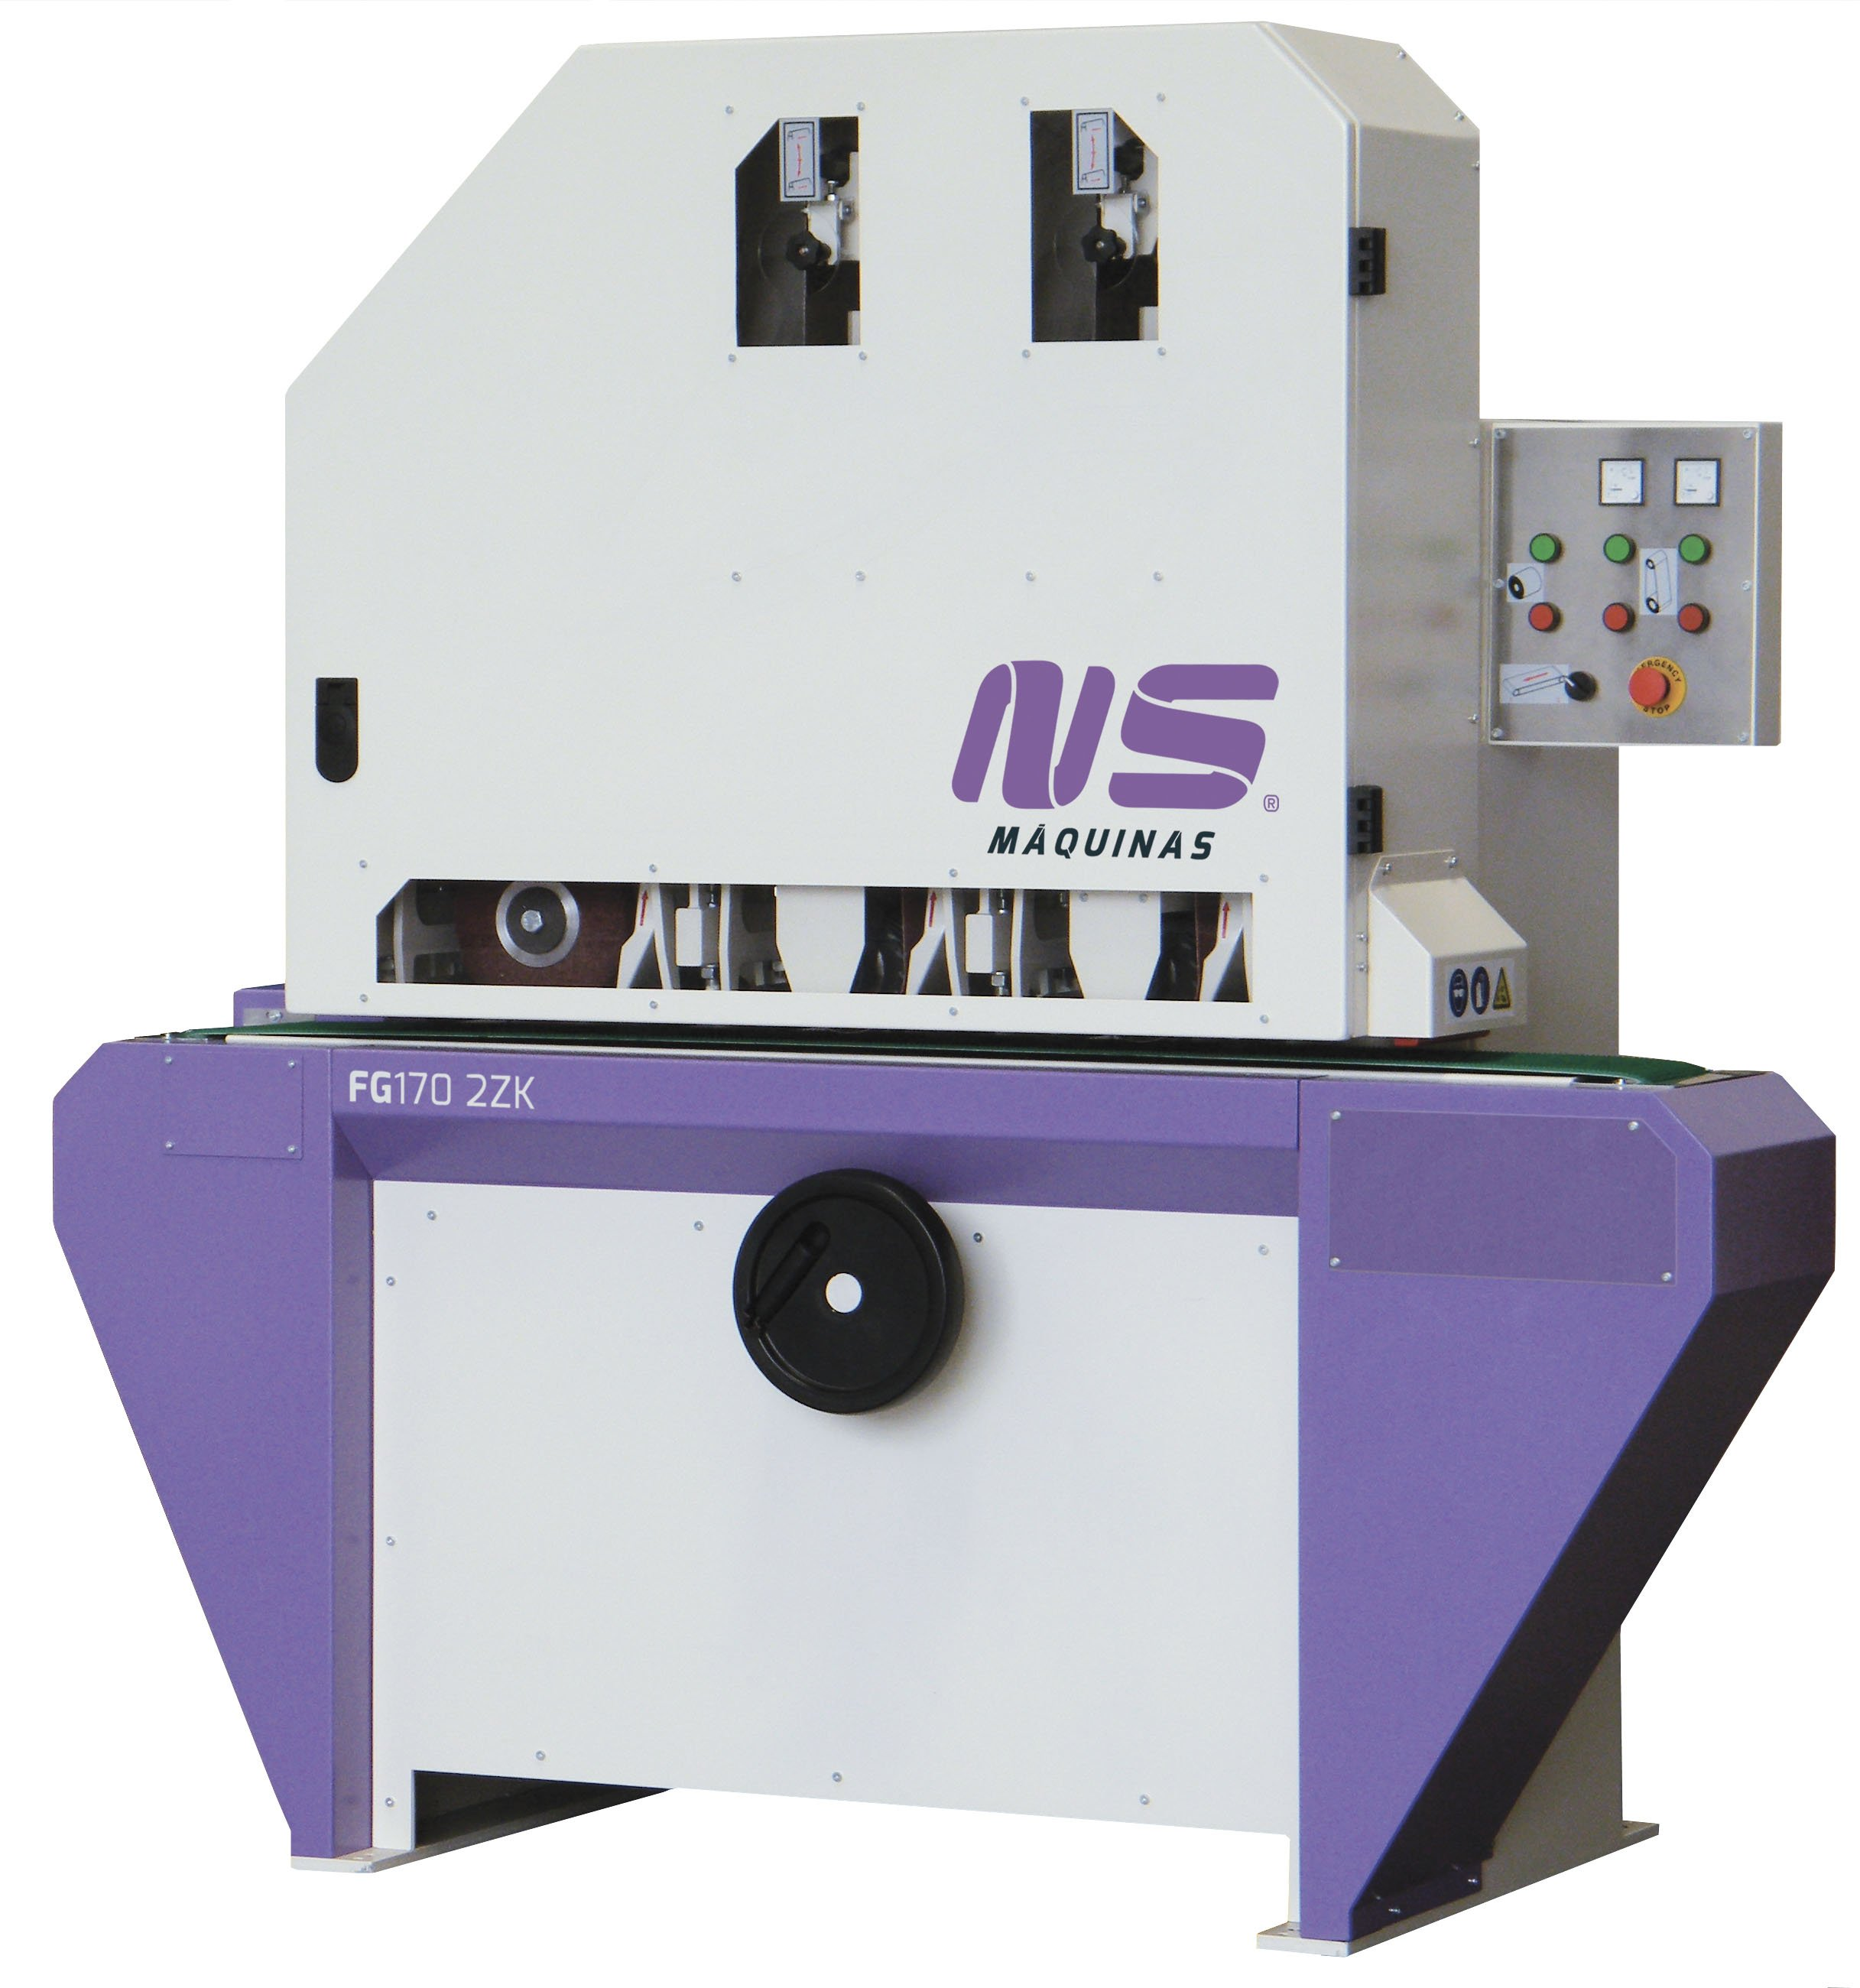 Flat Bar and Rectangular Finishing Machines - FG170